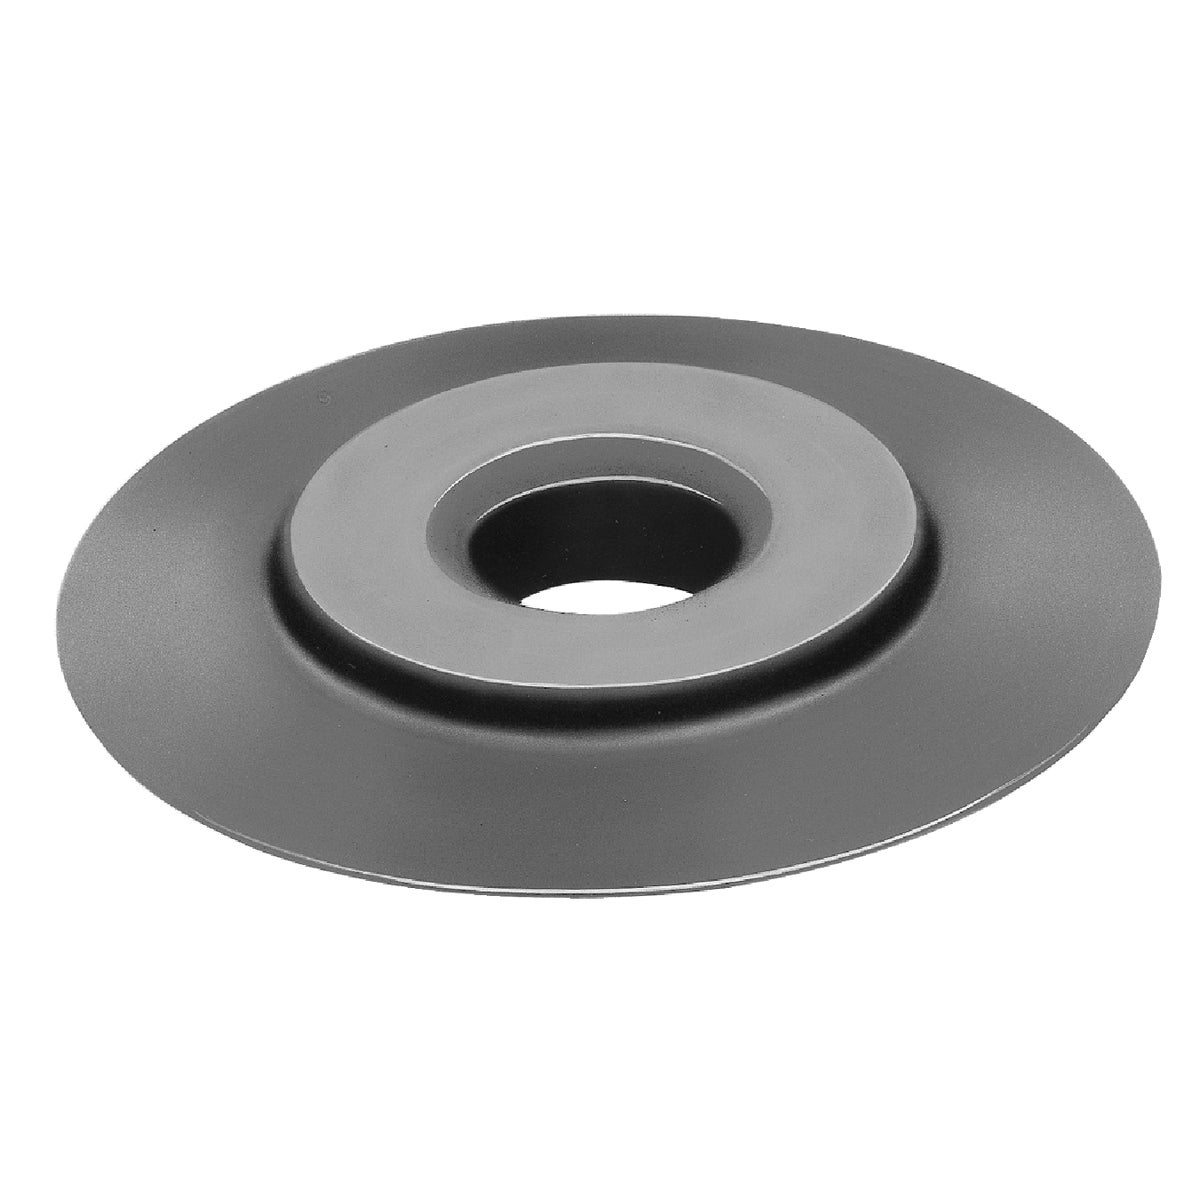 REPLACEMENT CUTTER WHEEL - 33190 by Ridge Tool Co